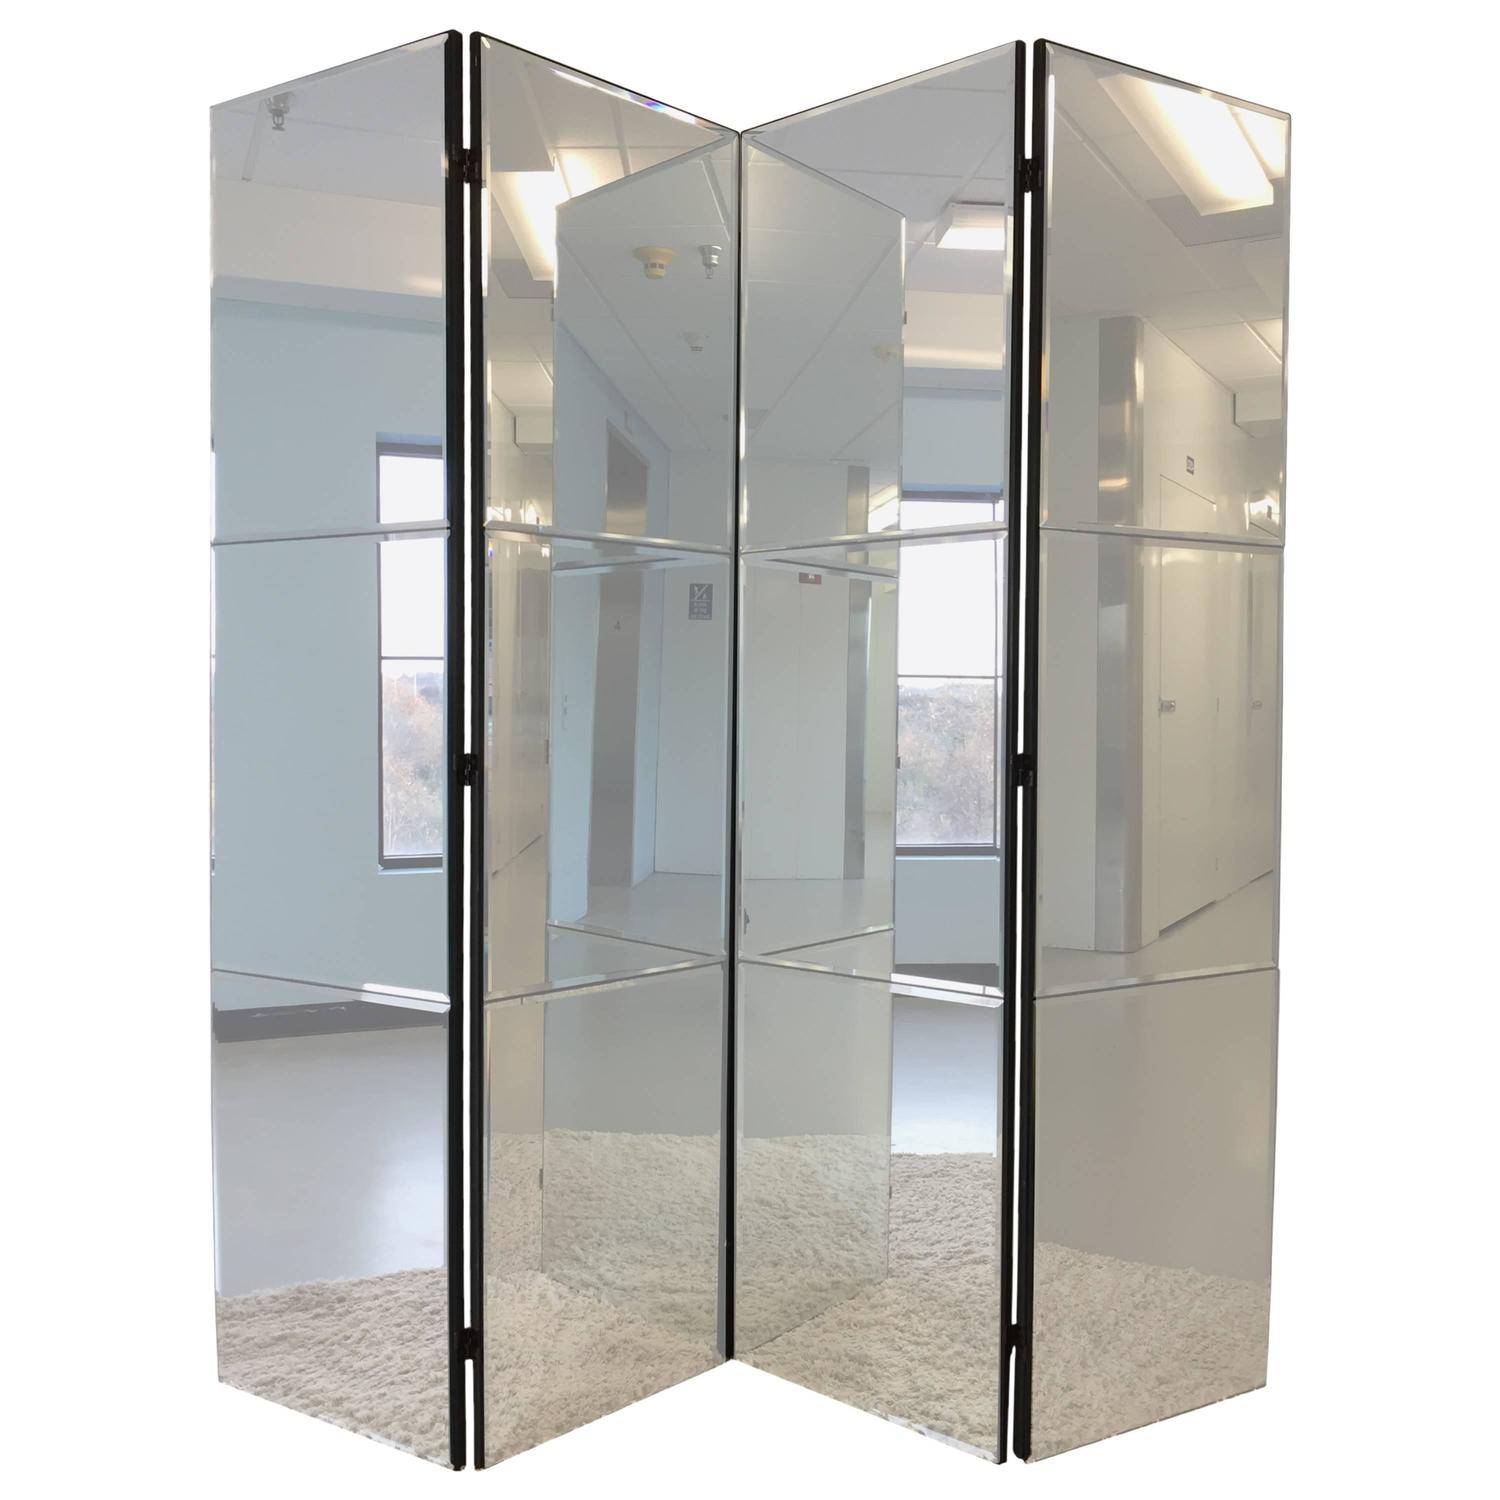 Beveled mirrored screen room divider for sale at 1stdibs for Mirror screen